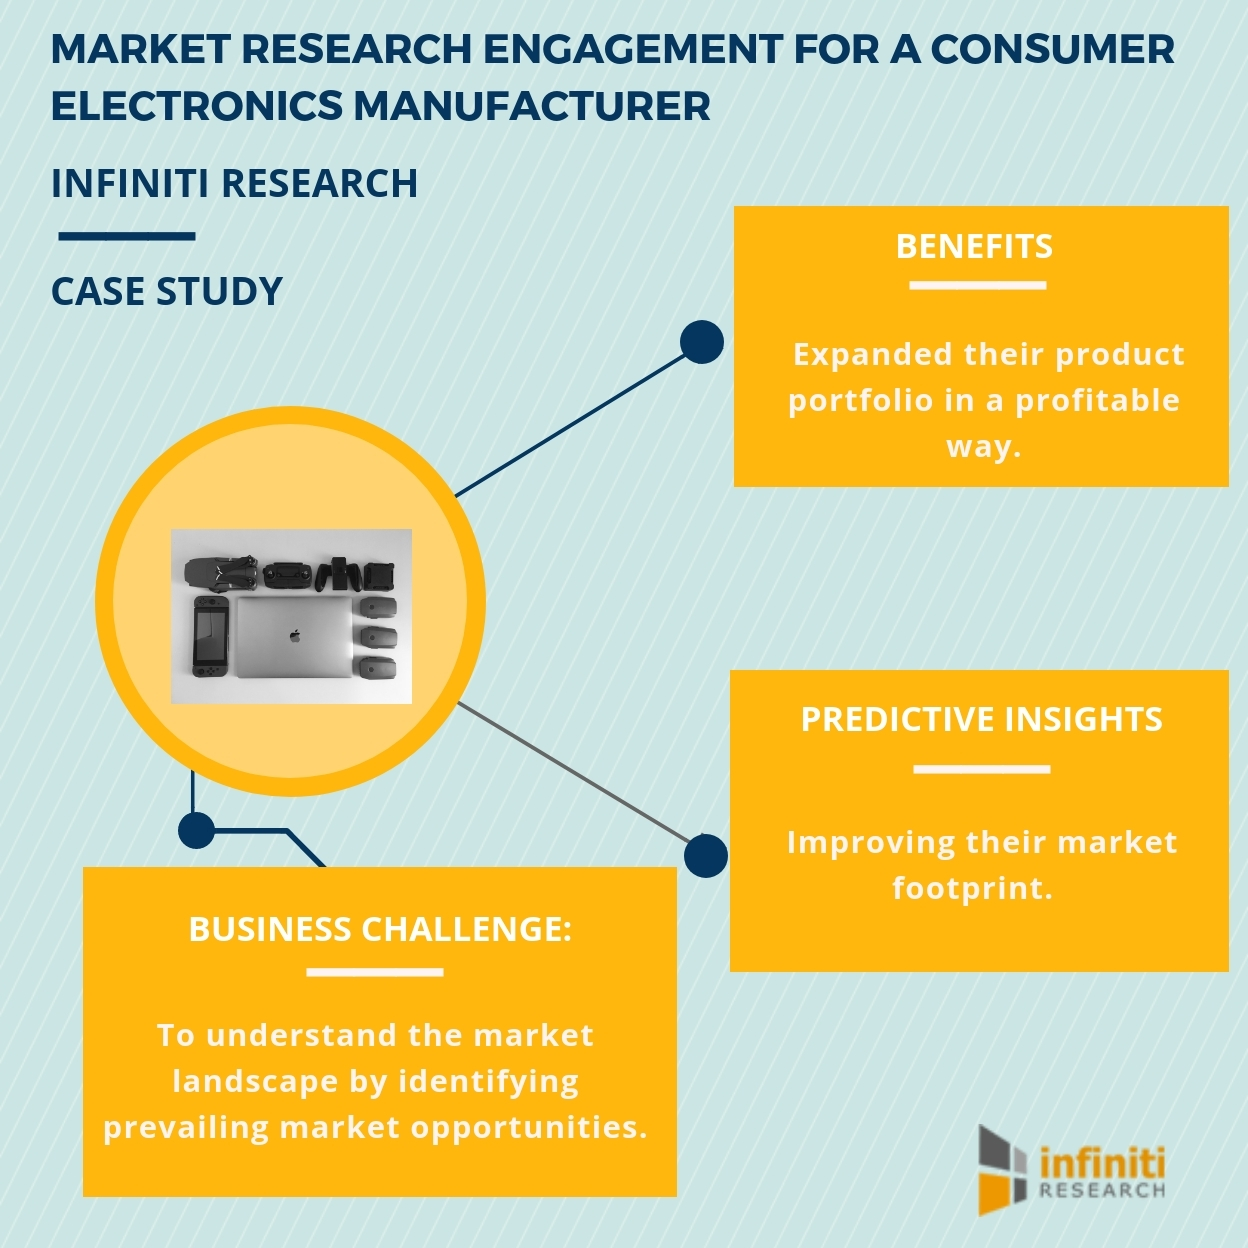 Infiniti's Market Research Services: Strengthening Companies